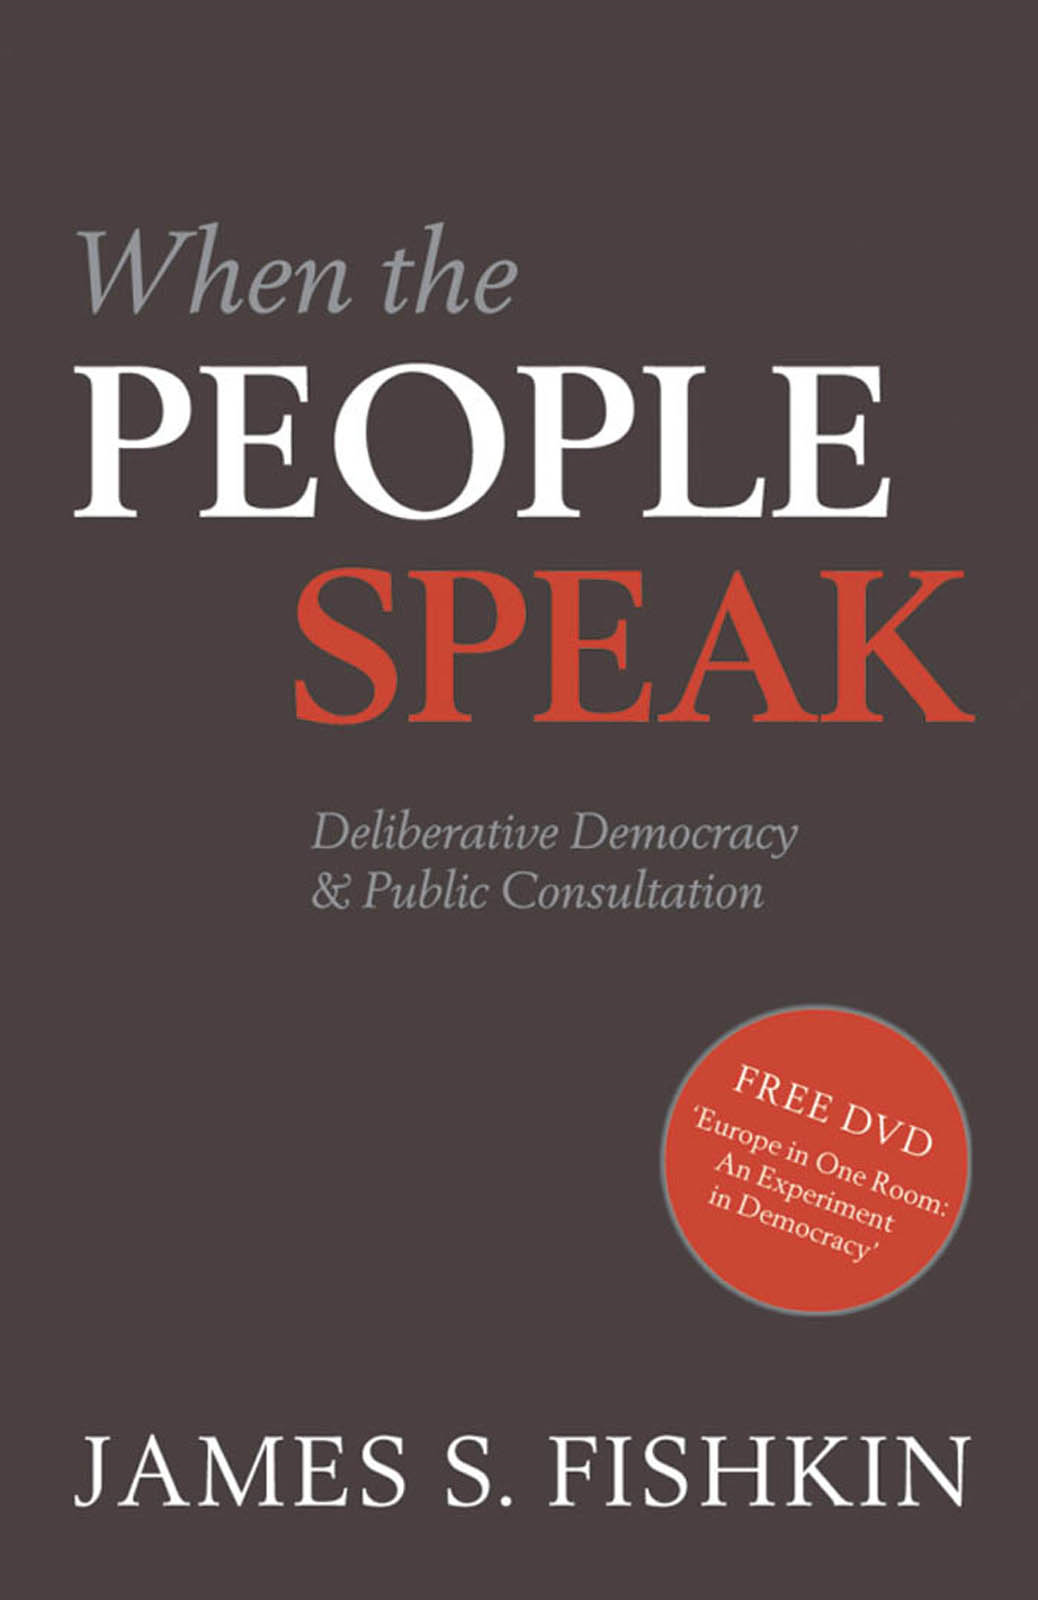 When the People Speak:Deliberative Democracy and Public Consultation